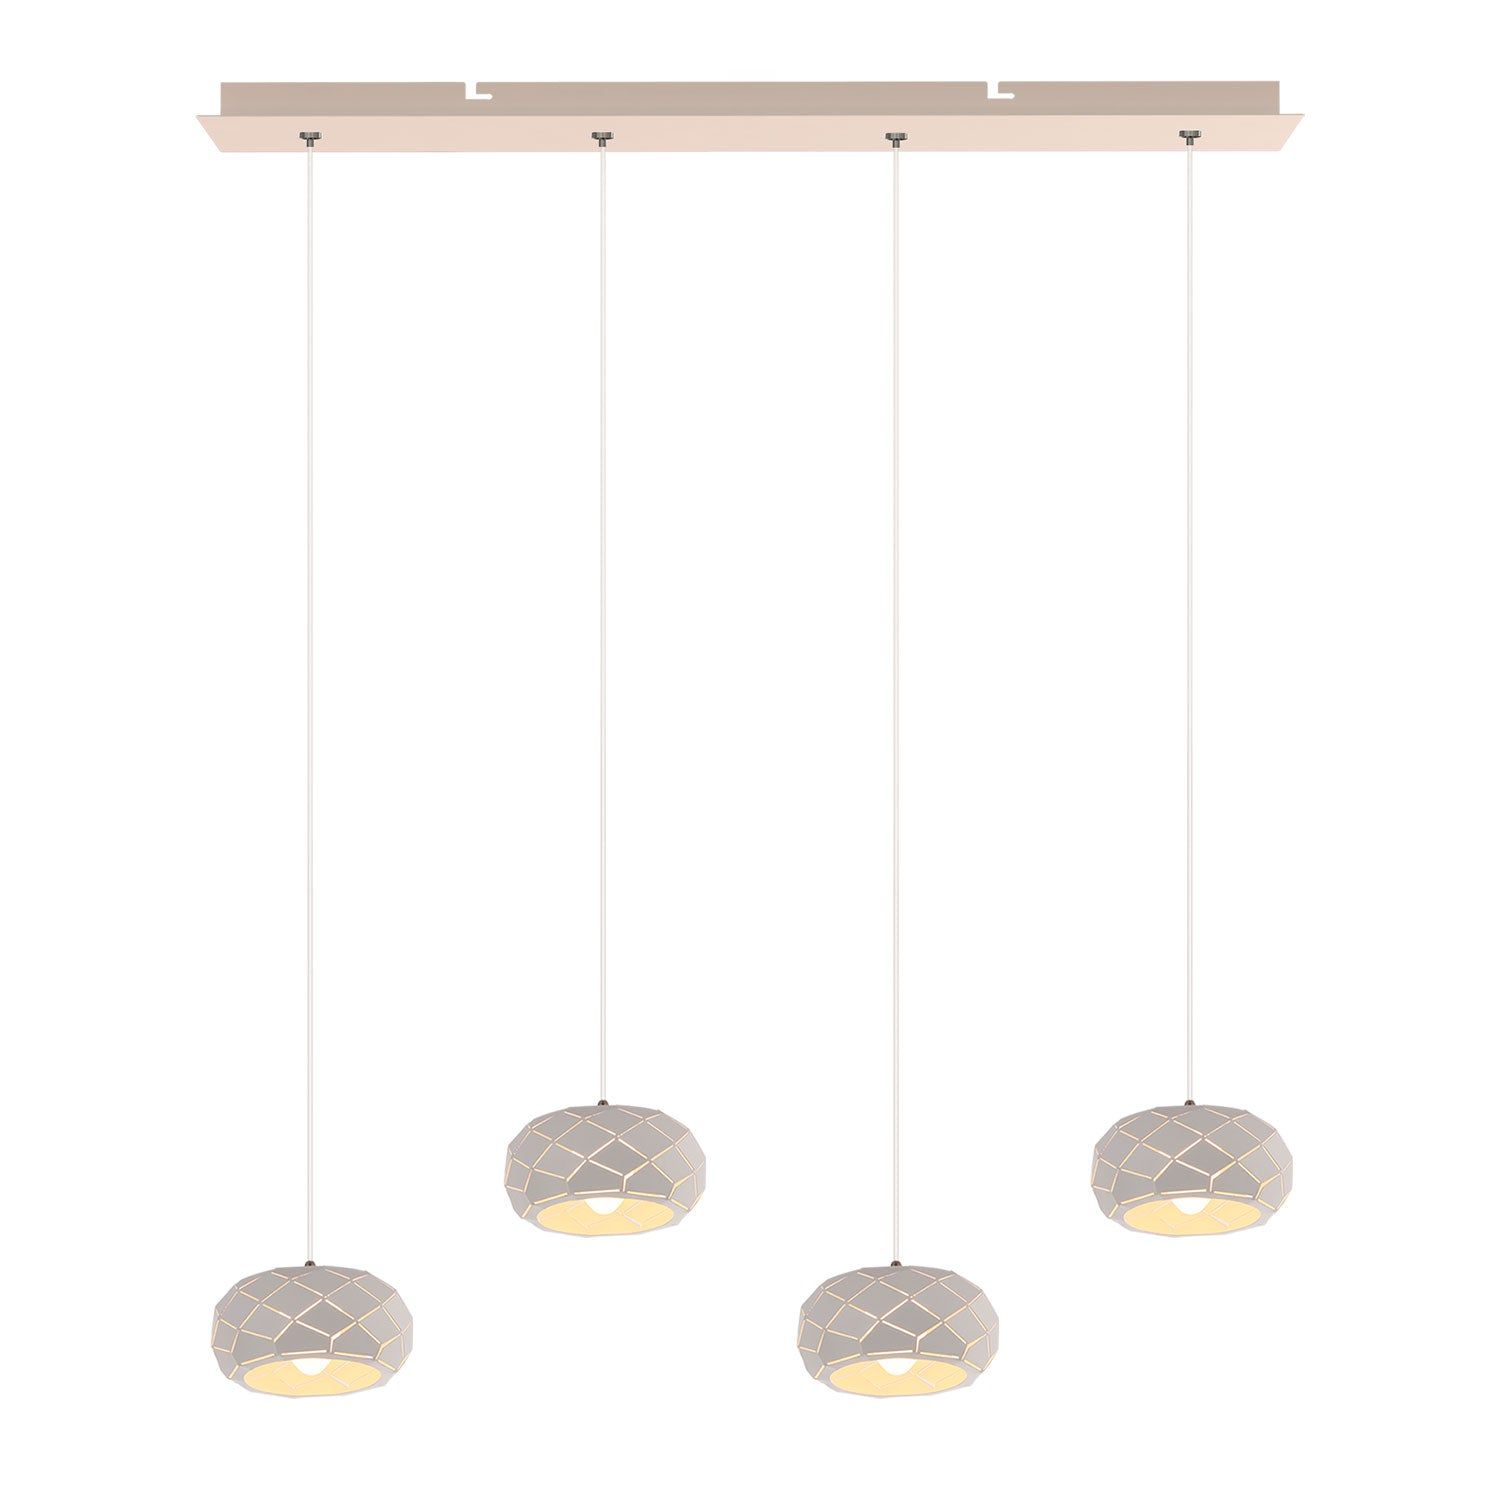 Crust 4-light LED mini pendant